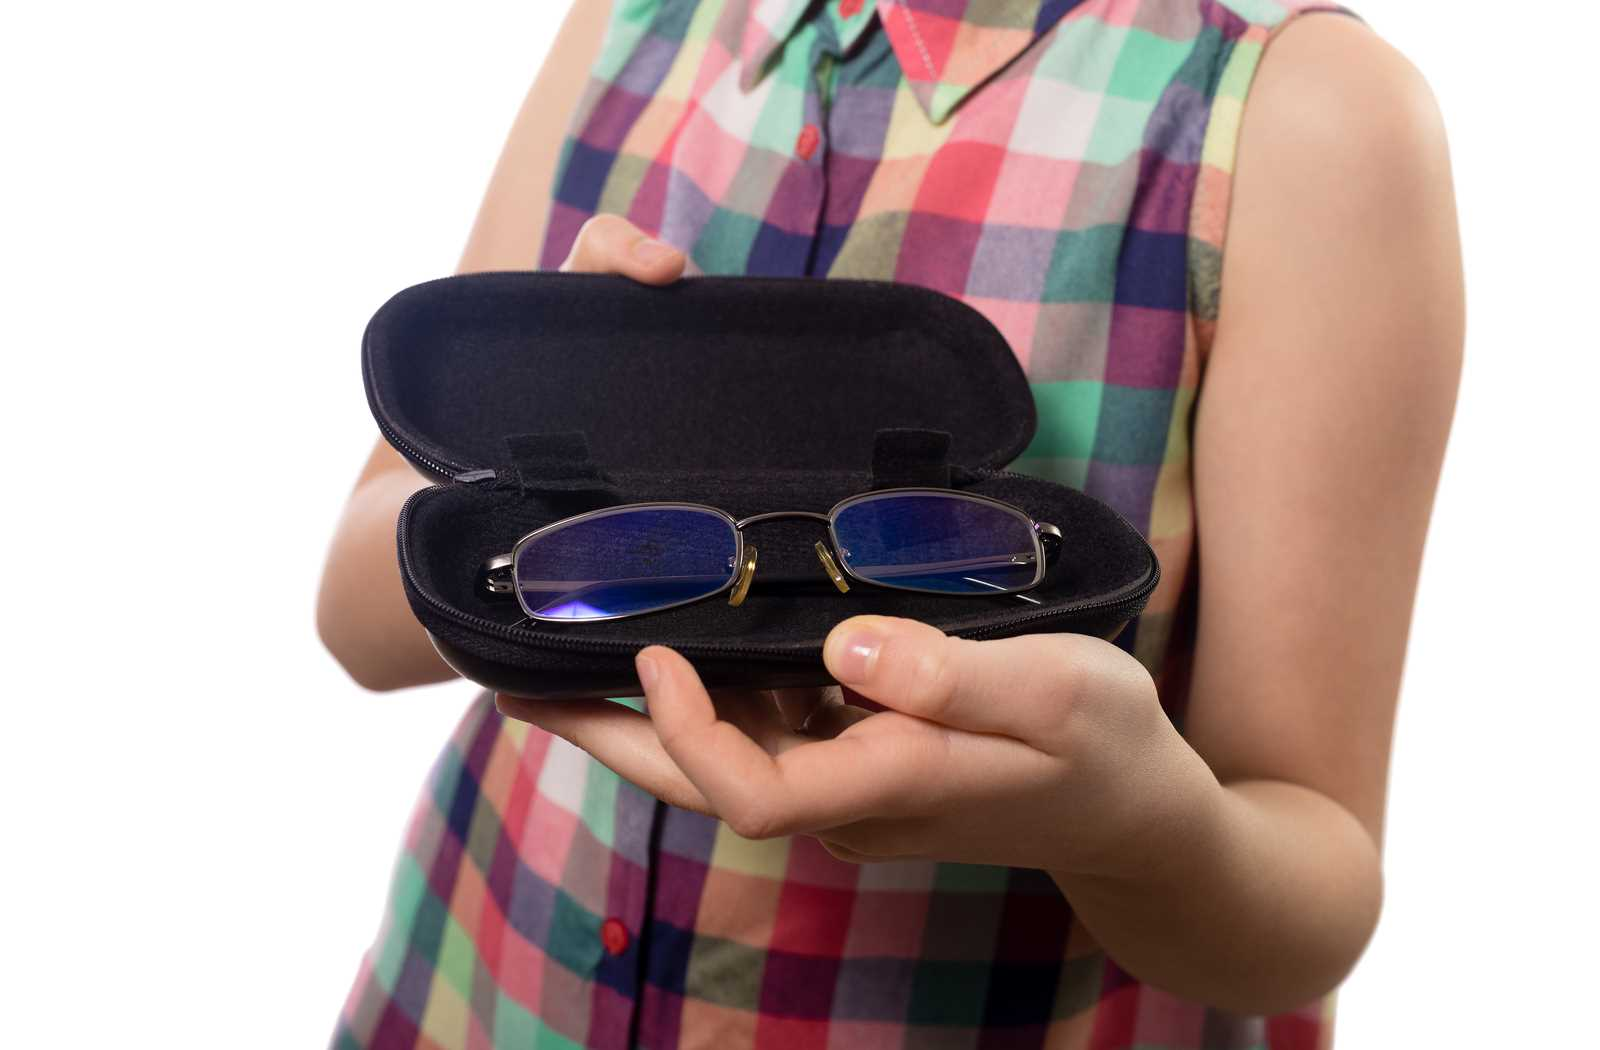 Child showing off a pair of glasses in a black case